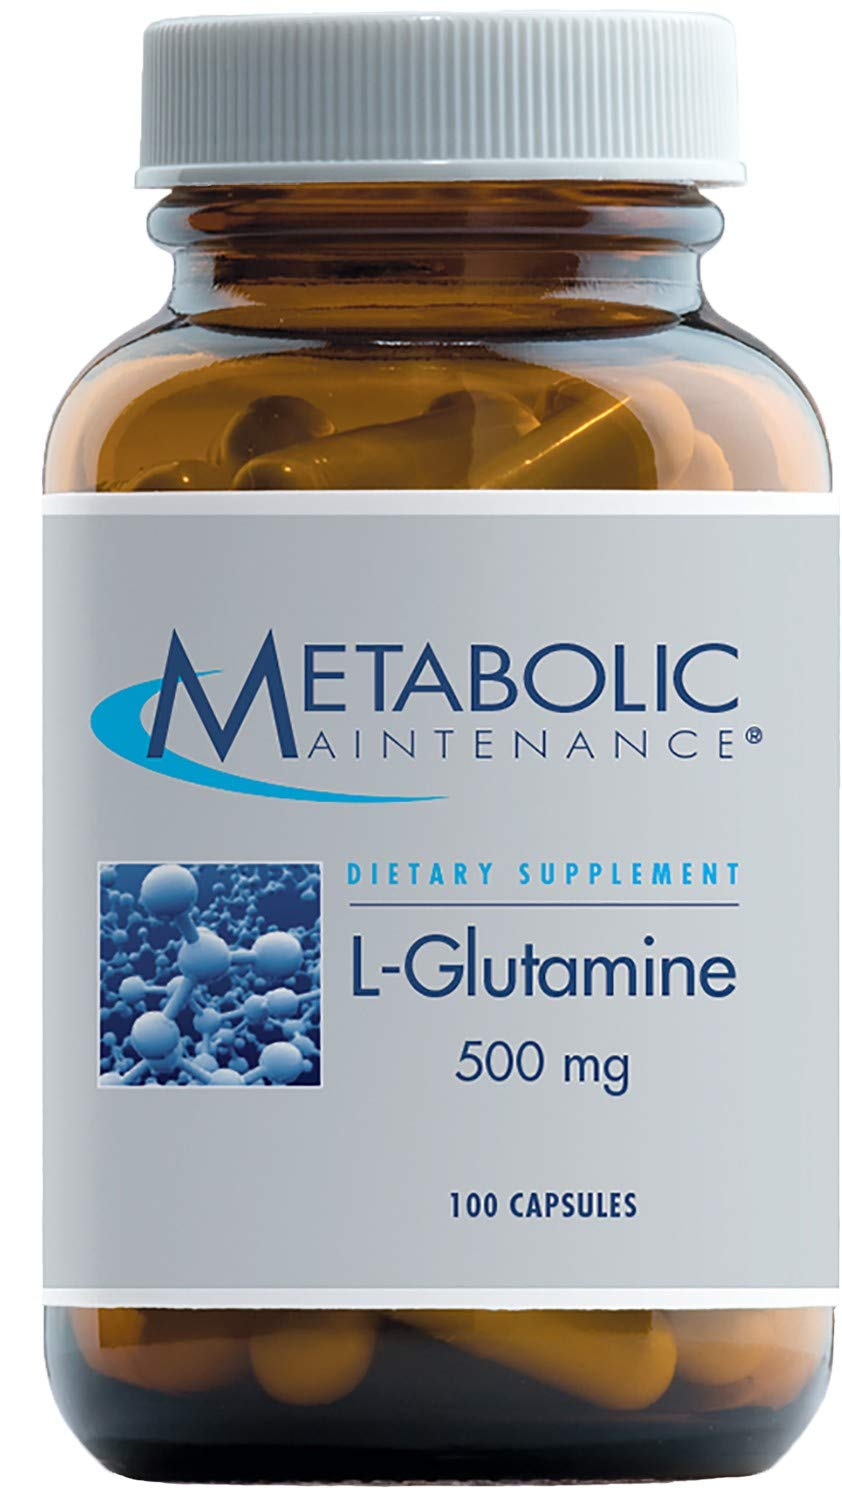 Metabolic Maintenance - L-Glutamine - 500 mg, Amino Acid Support for Gut Health, 100 Capsules